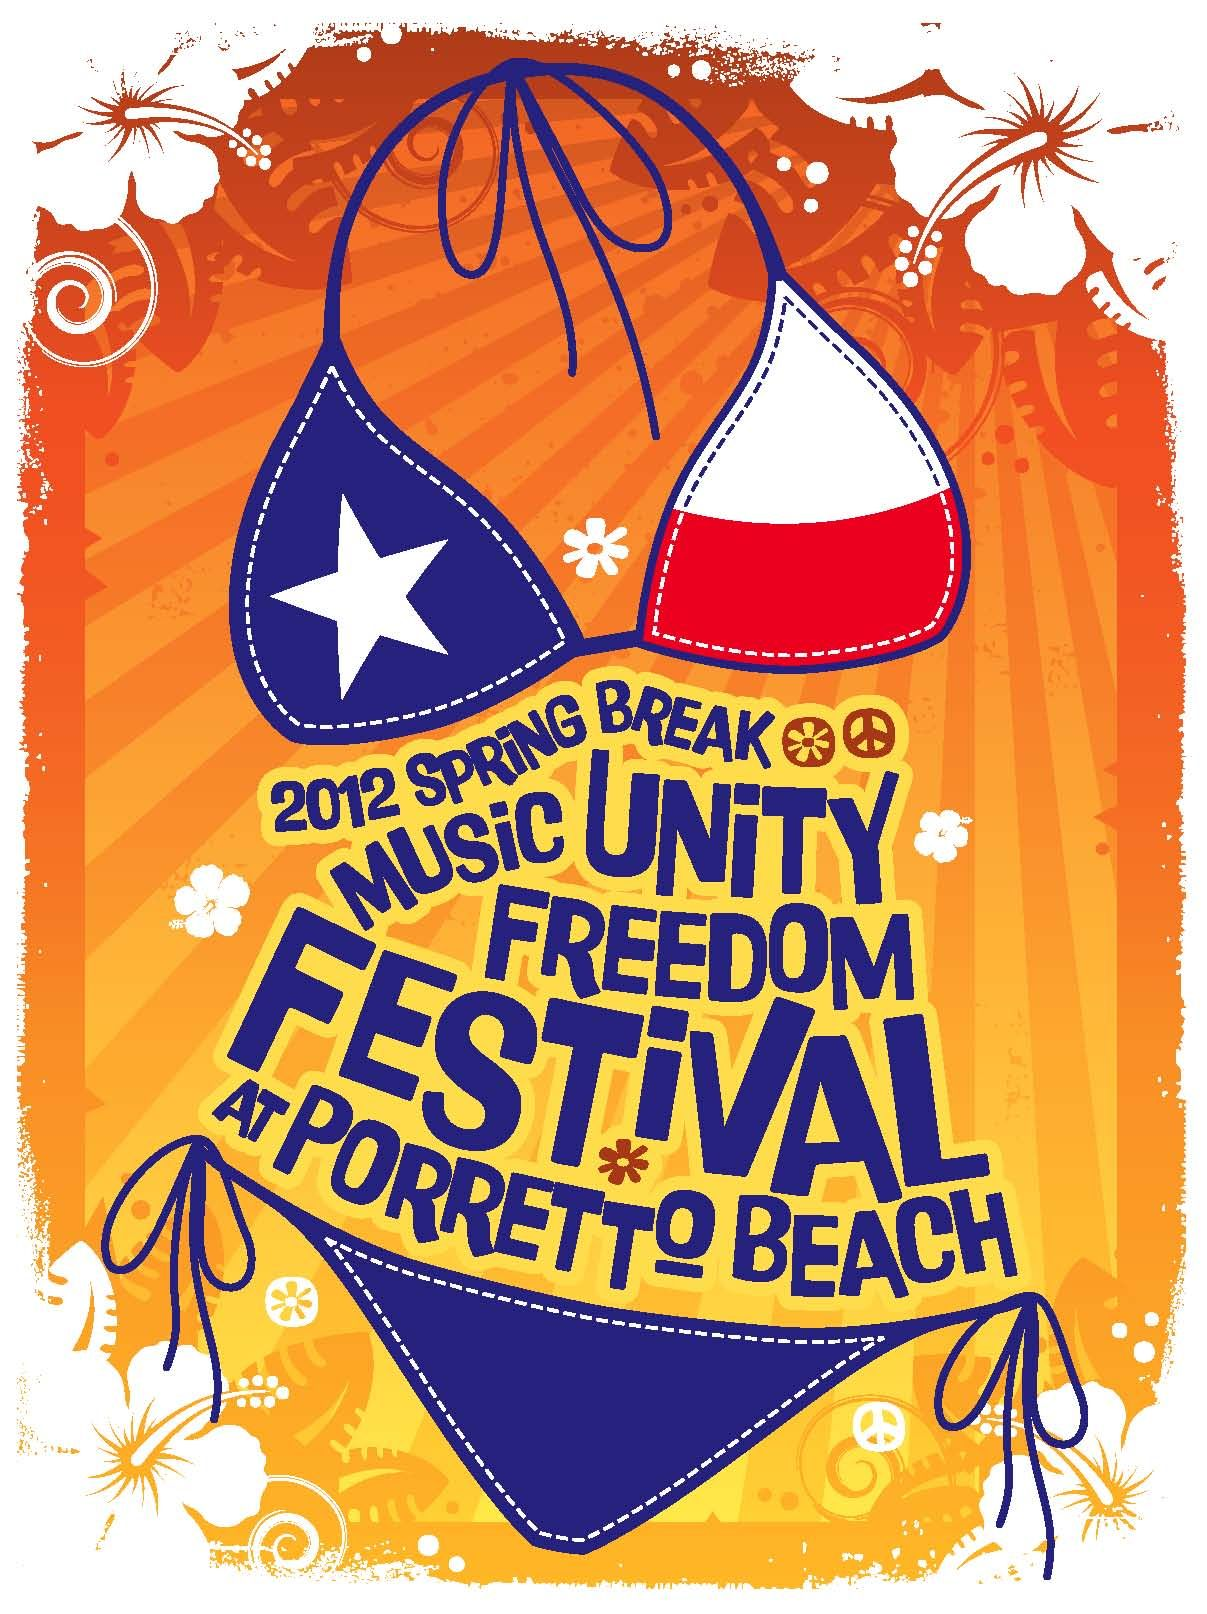 Unity Freedom Festival Poster Freedom Festival Festival Posters